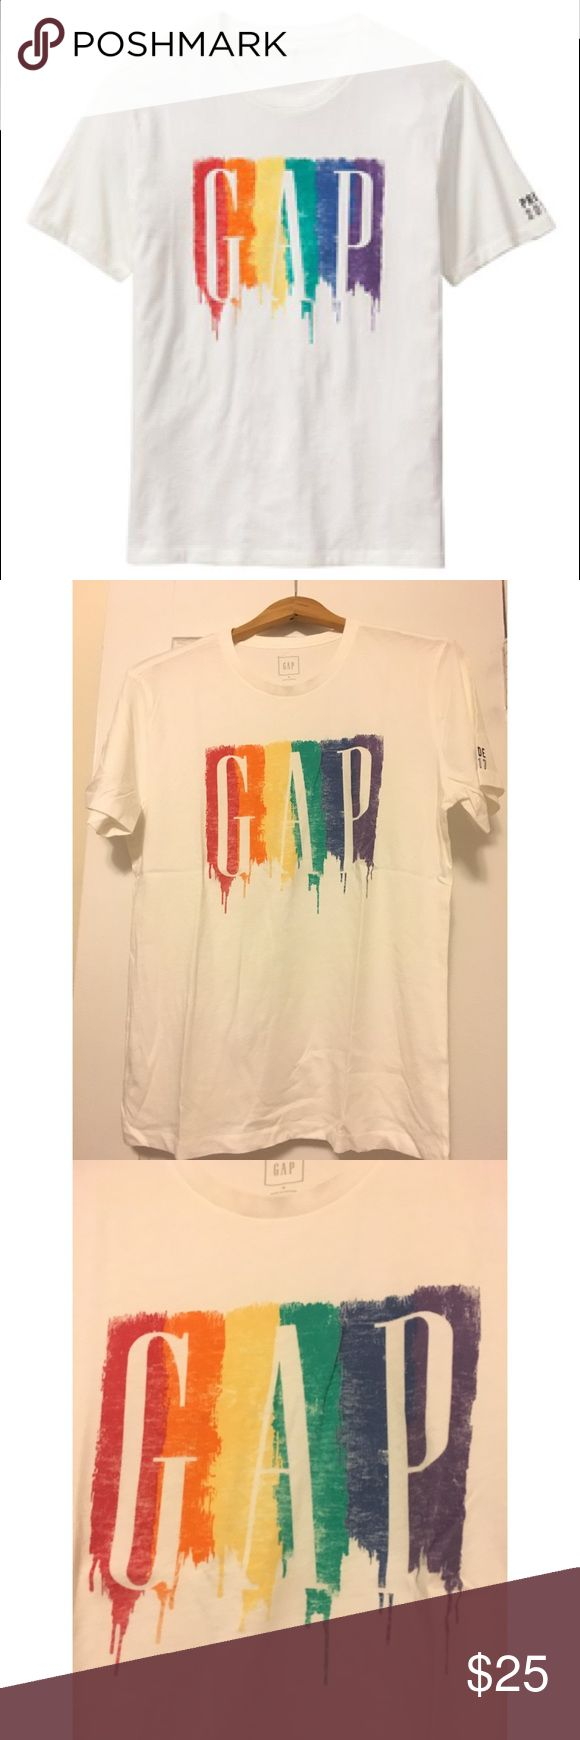 Gap Exclusive Gay Pride 2017 T-Shirt Gap Exclusive Gay Pride 2017 White T-Shirt. Size Medium, is a bit oversized. Limited edition Gap shirt that was bought during June, which is Gay Pride month.  Gap was one of the many brands to take time to commemorate and celebrate the LGBT community with events and parades across the globe. Part of their #WearYourPride campaign. Price is firm. GAP Tops Tees - Short Sleeve